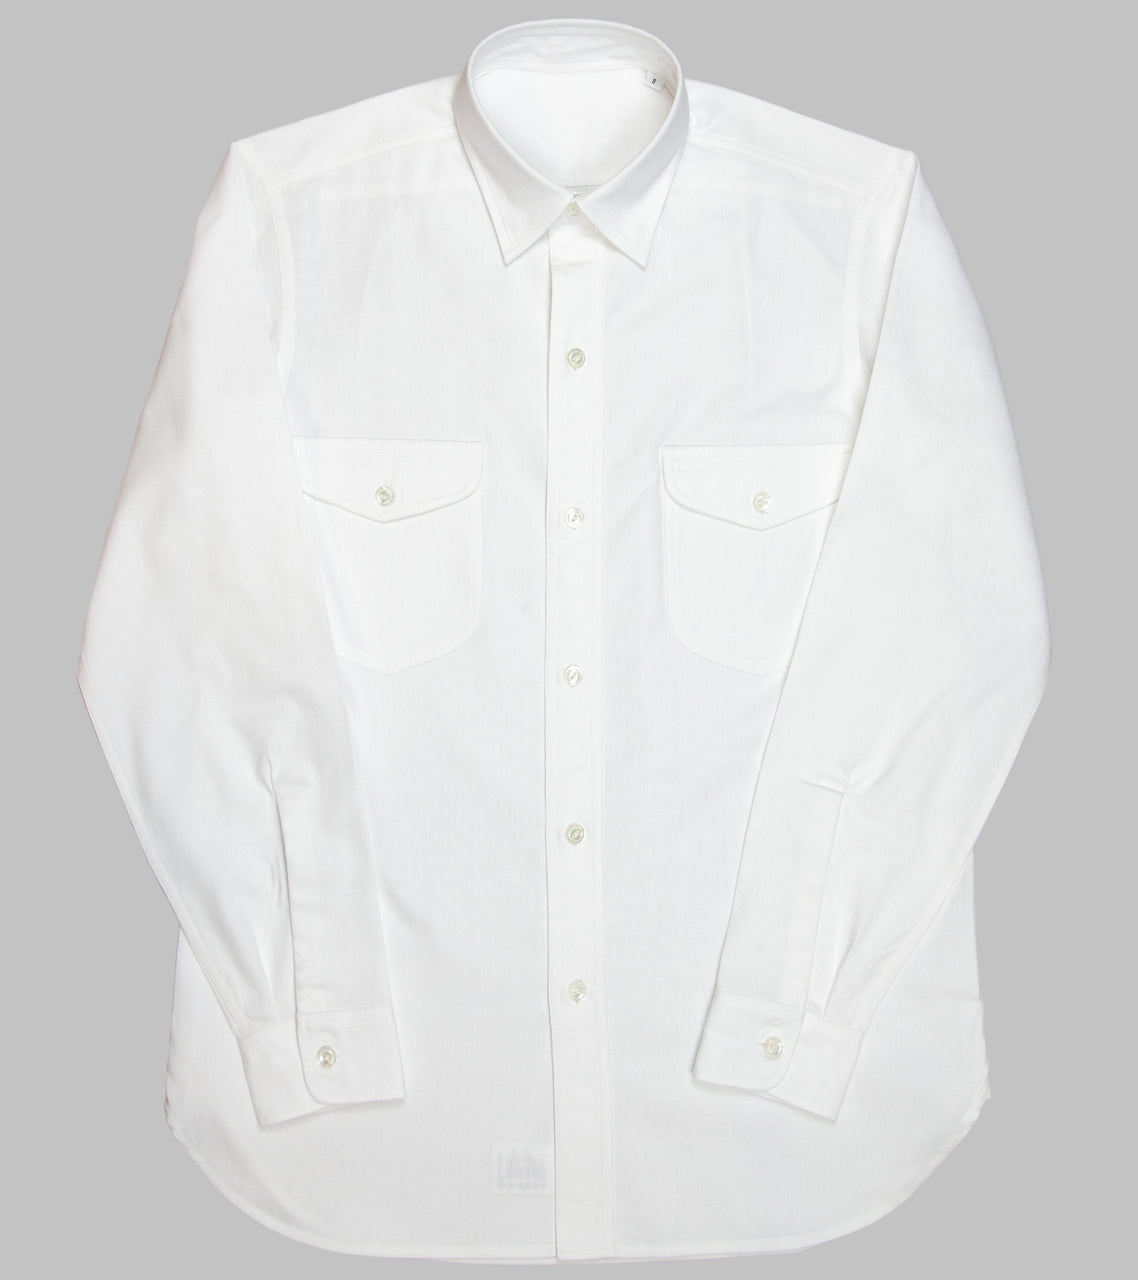 Bryceland's Teardrop HBT Work Shirt White